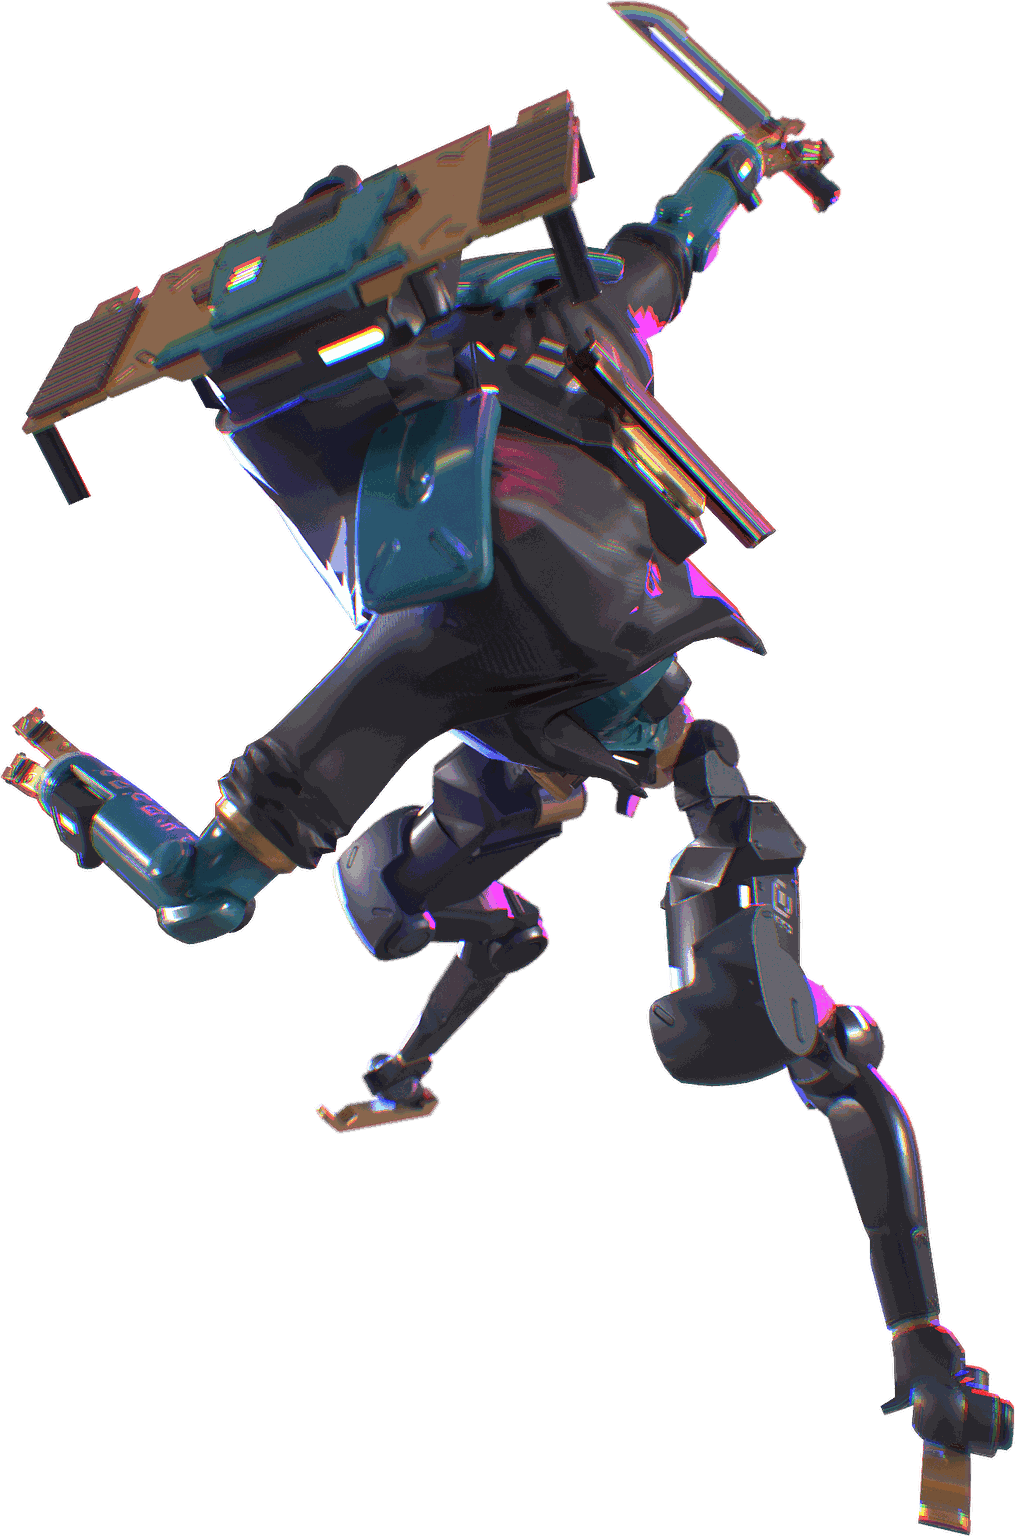 Game droid character